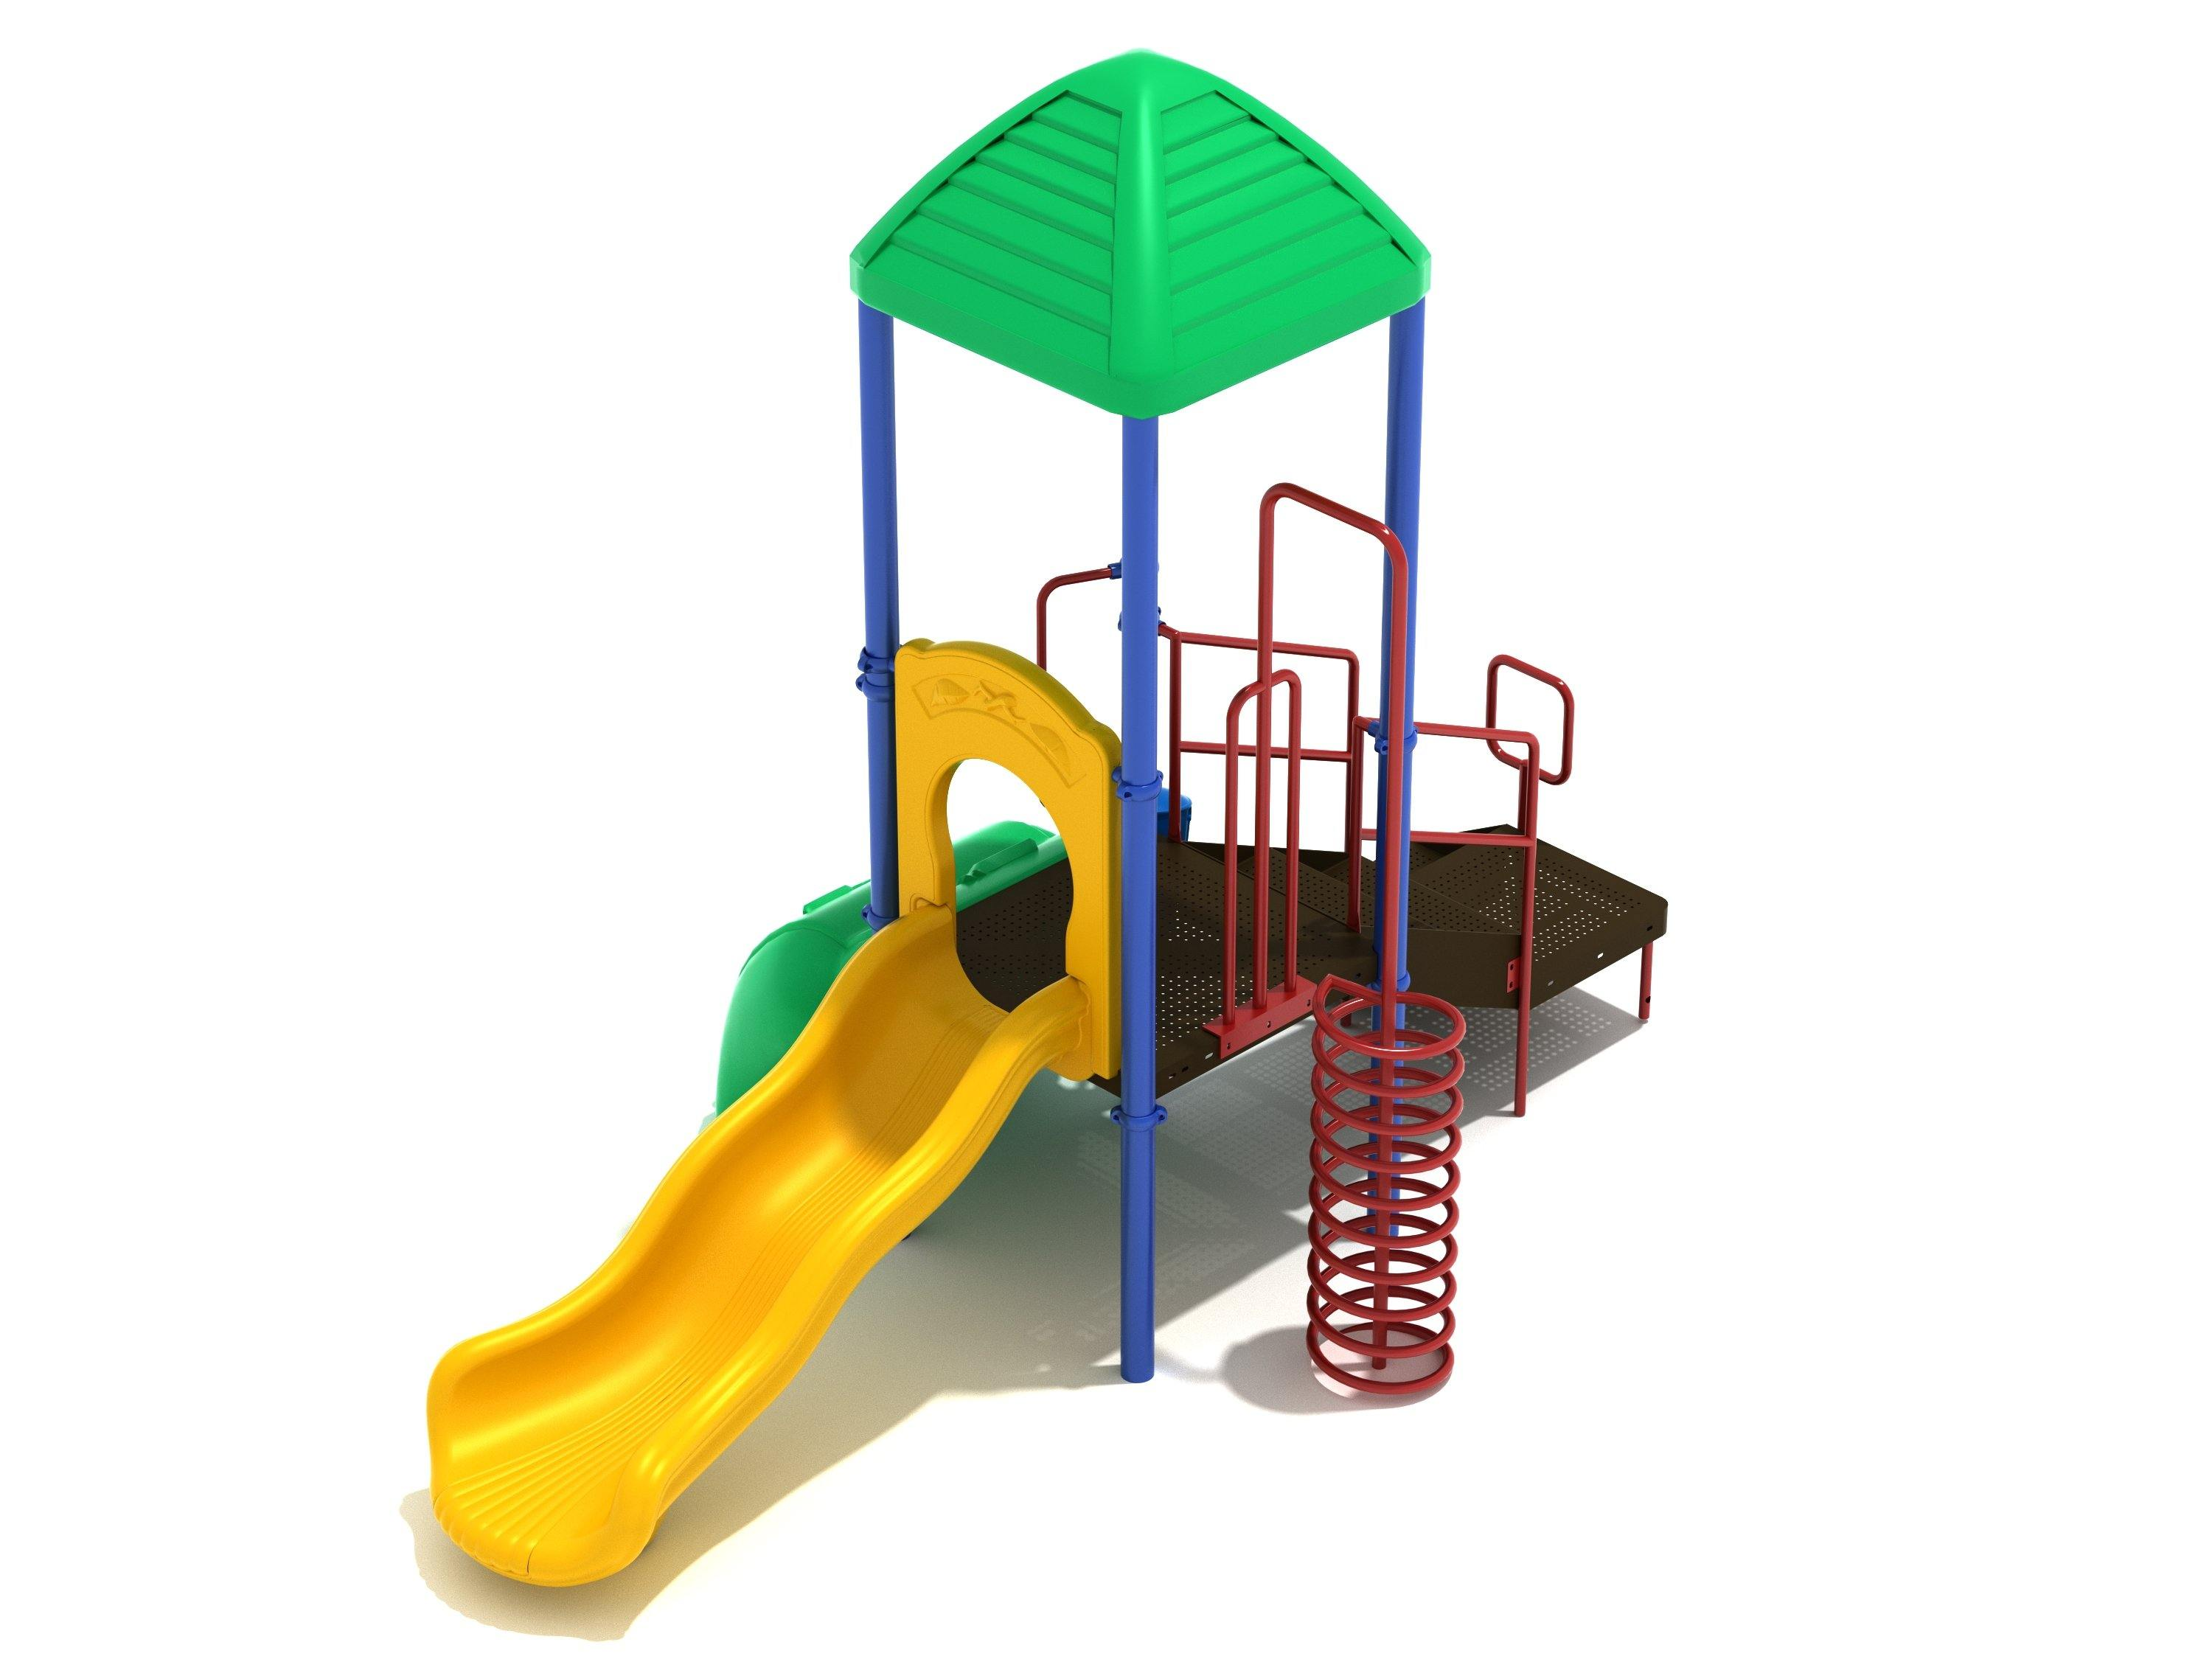 Port Liberty - River City Play Systems